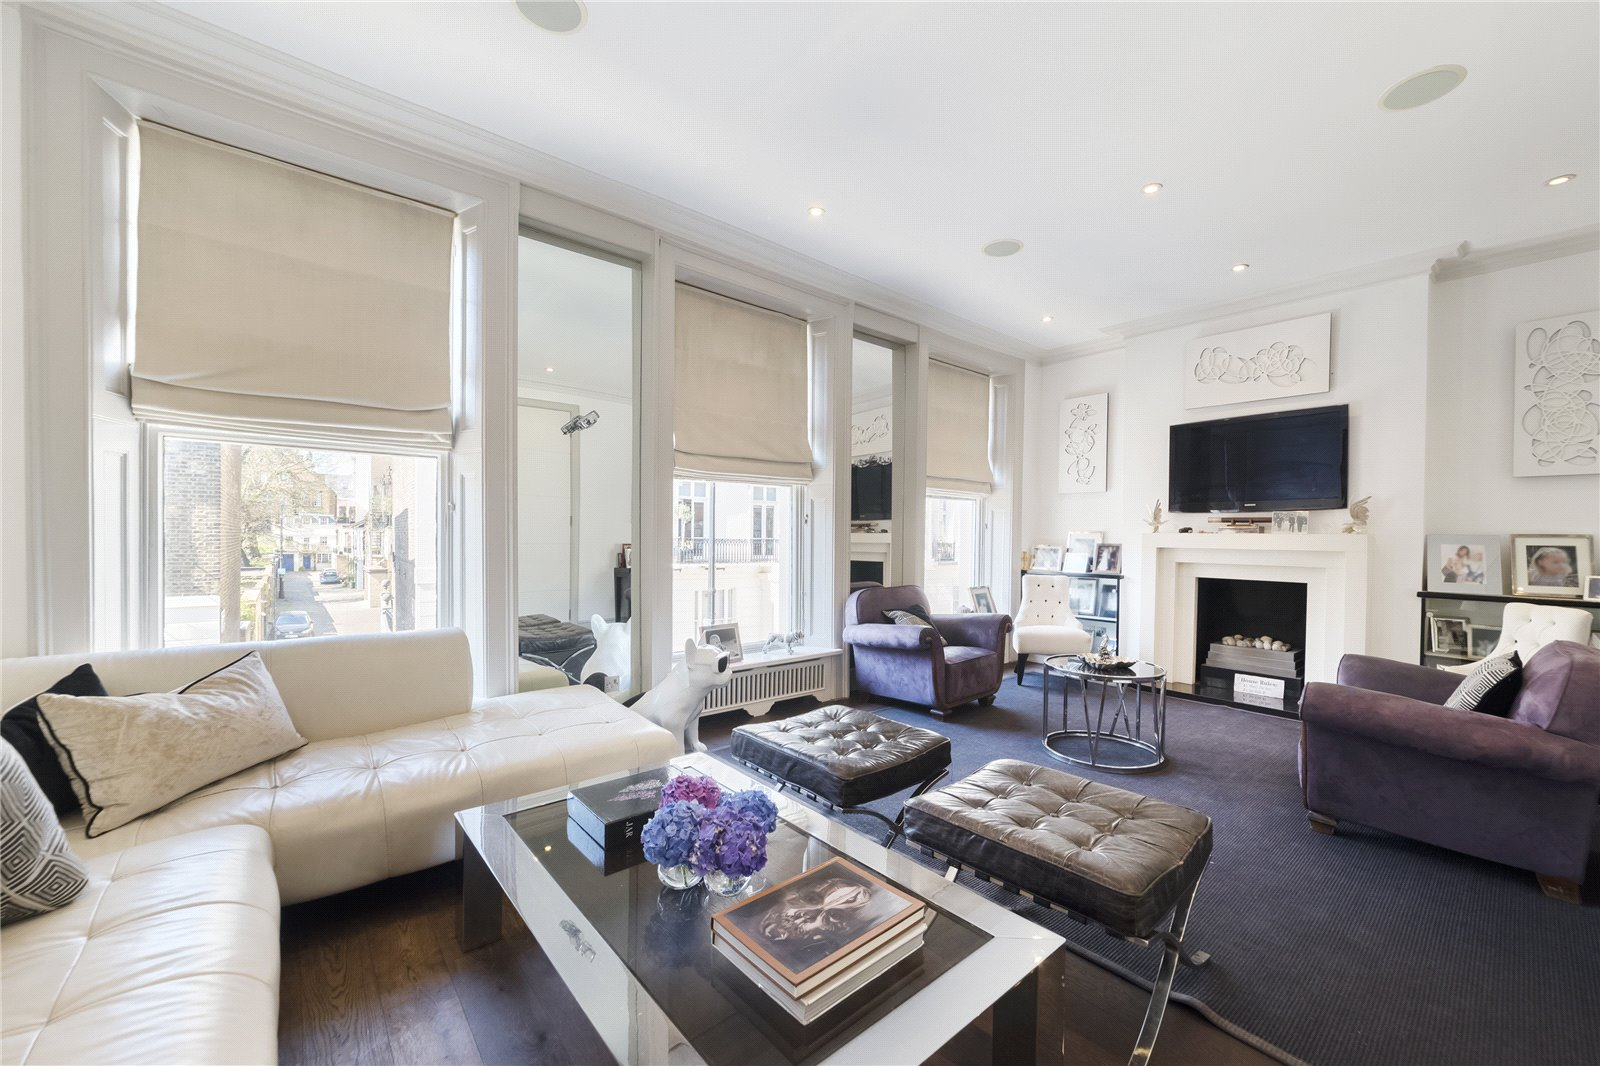 House for Sale at Chester Row, Belgravia, London, SW1W Chester Row, Belgravia, London, SW1W